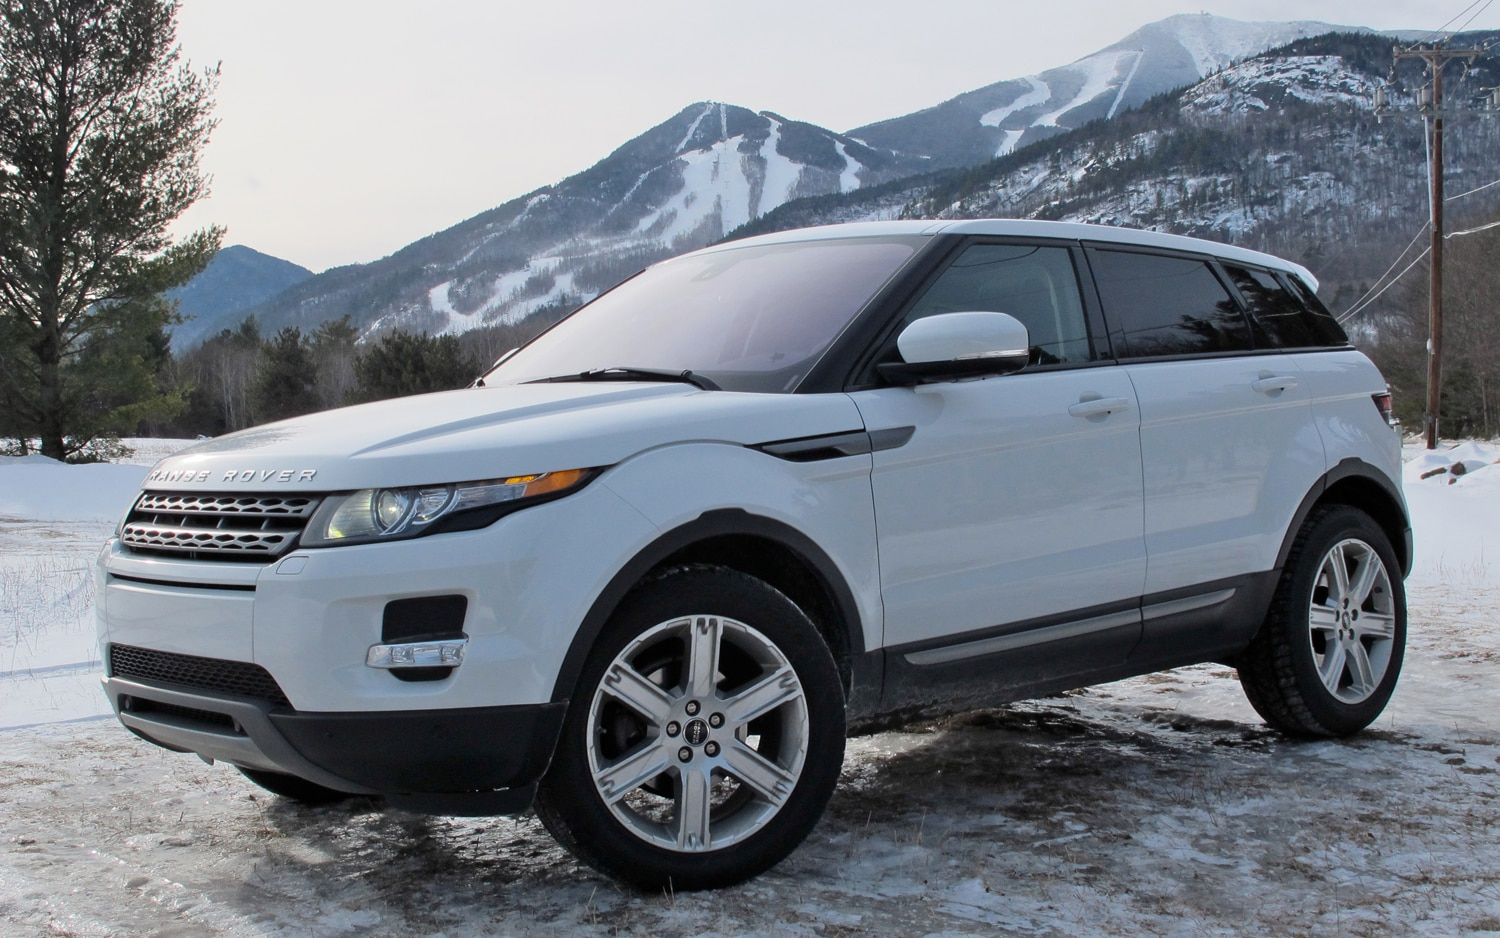 2012 Land Rover Range Rover Evoque Front Left Side View